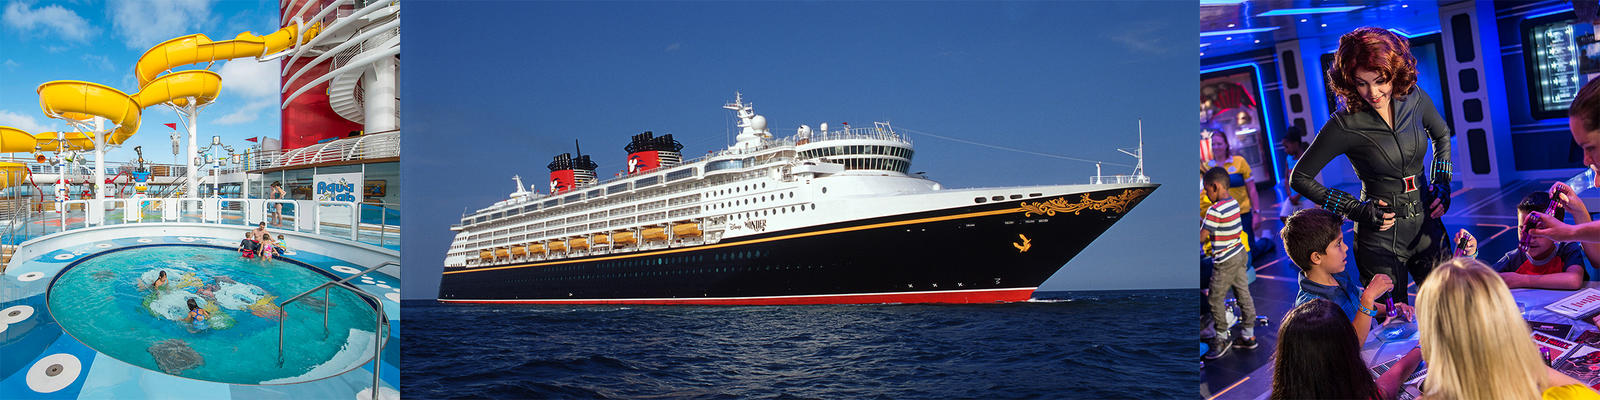 3 night disney cruise dream dress code policy images